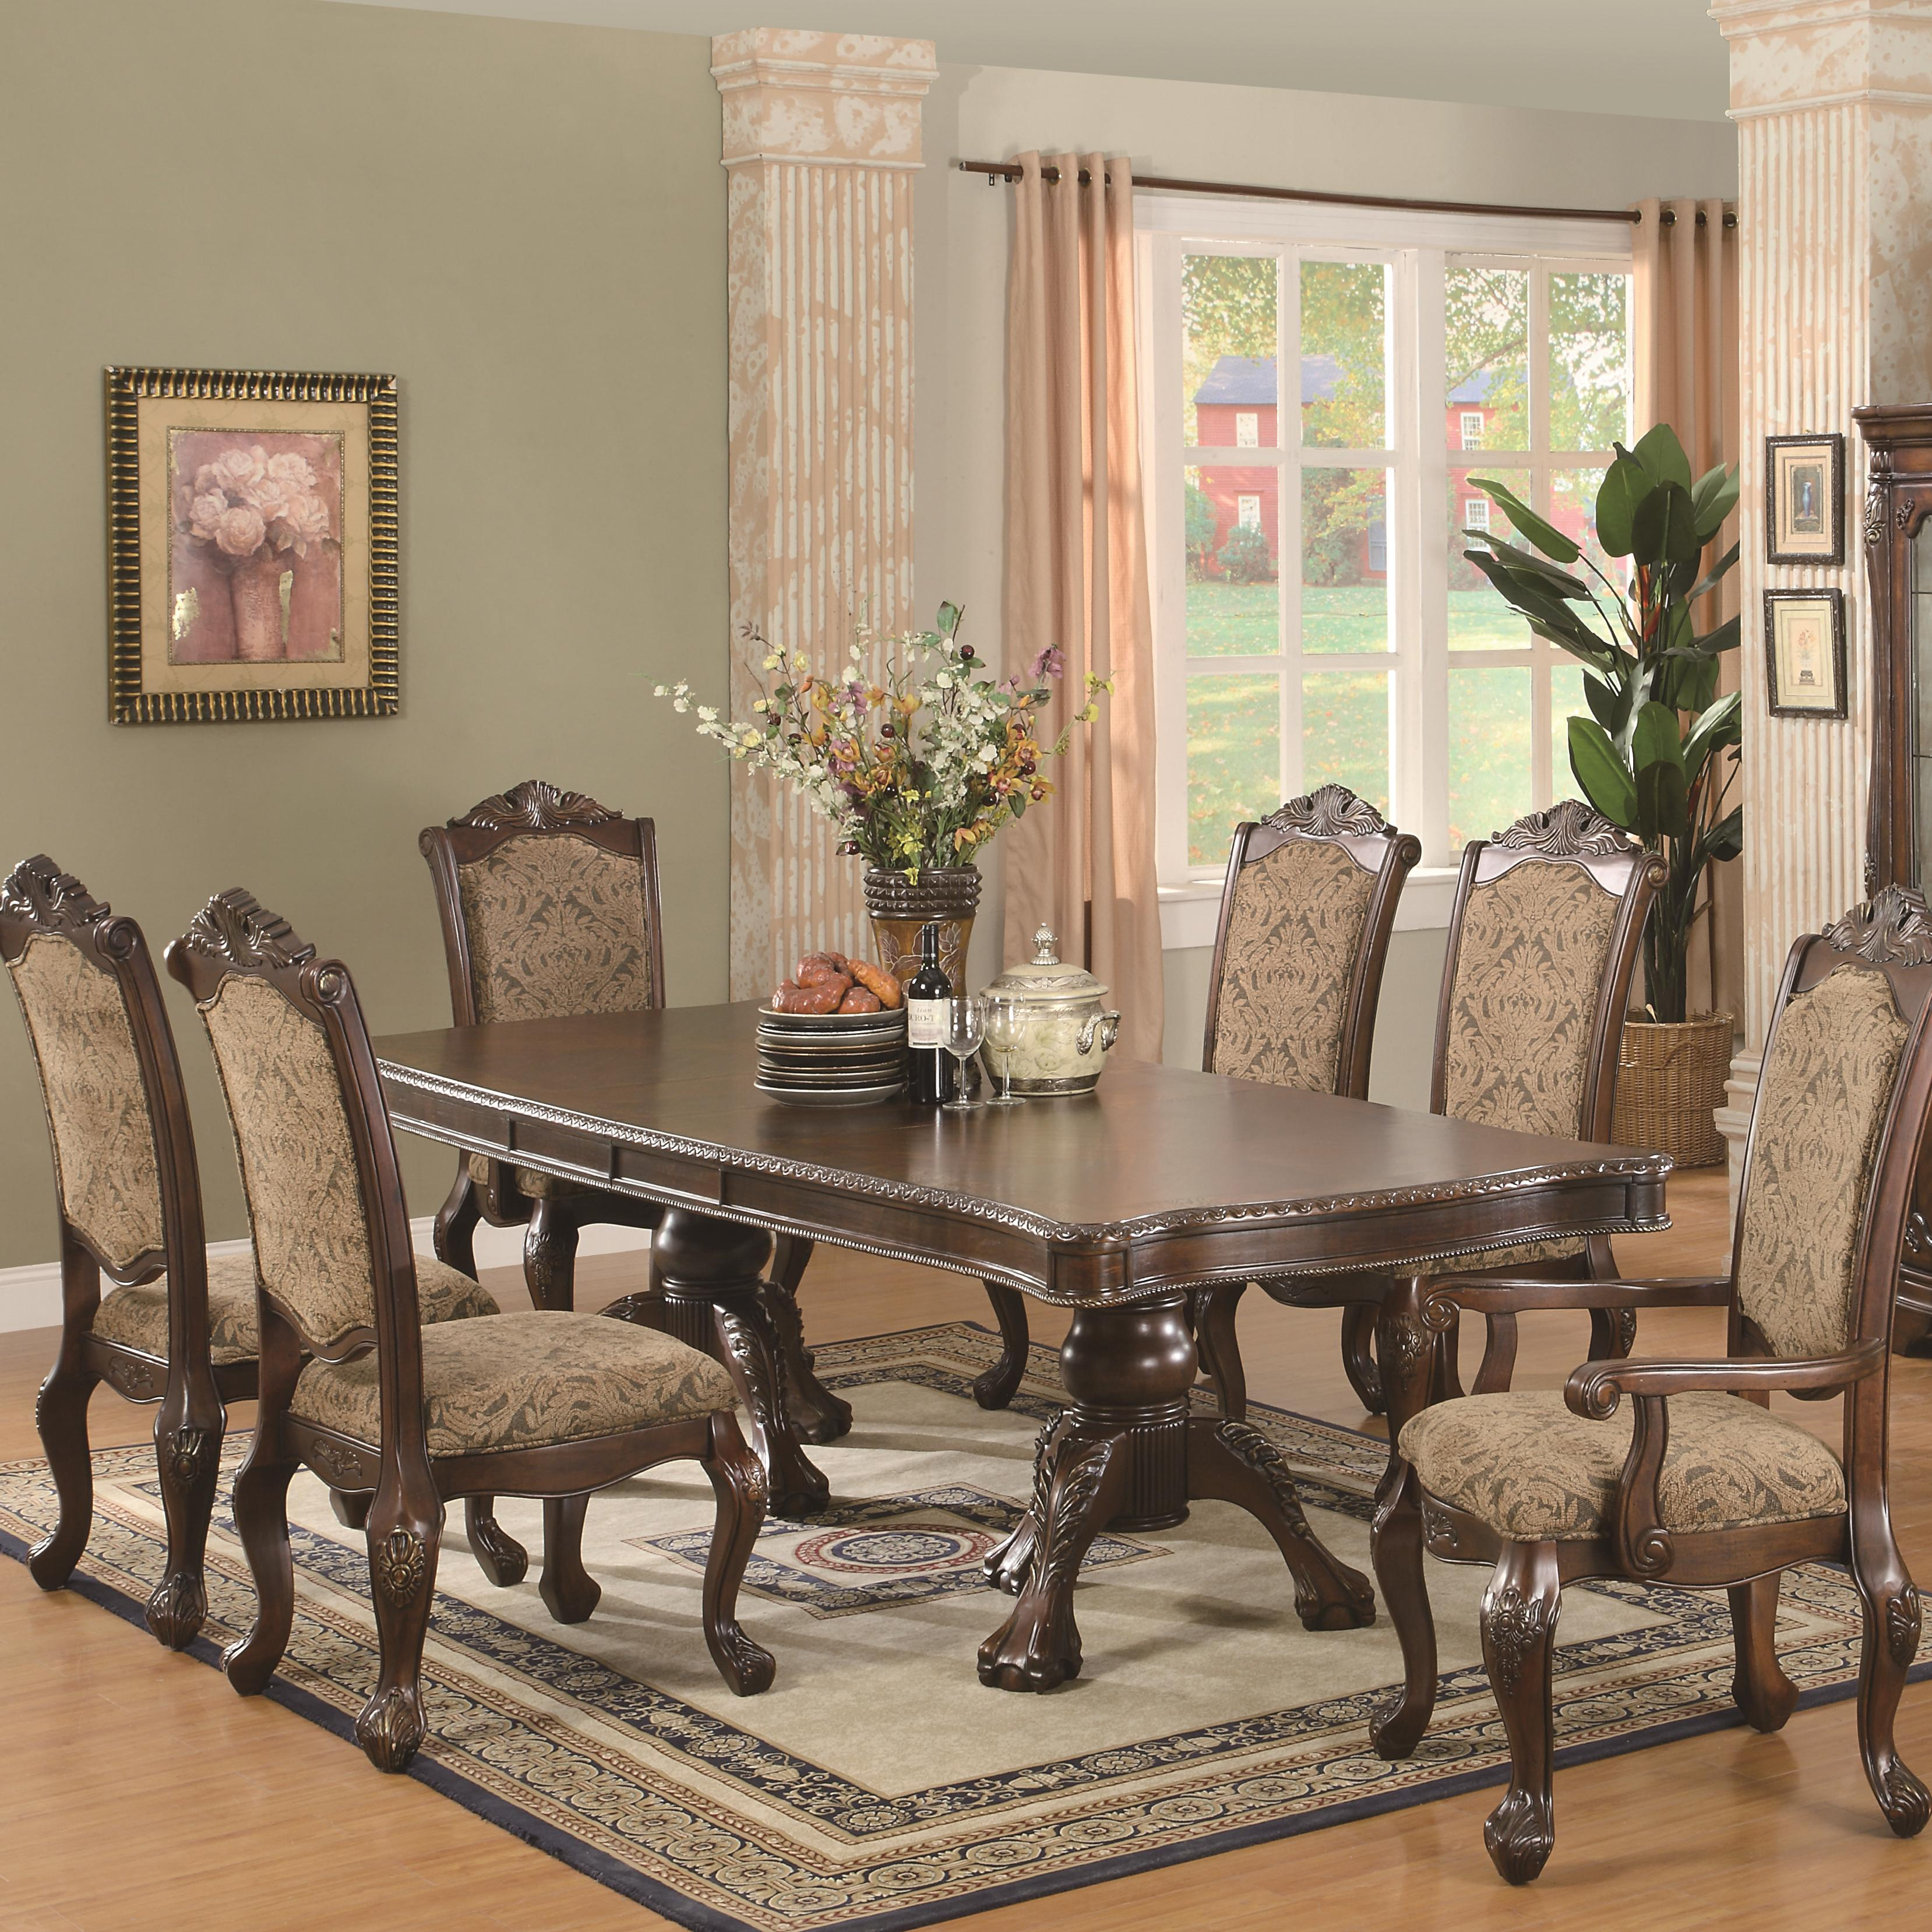 Coaster Andrea 7 Piece Table and Chair Set - Item Number: 103111+103112x4+103113x2